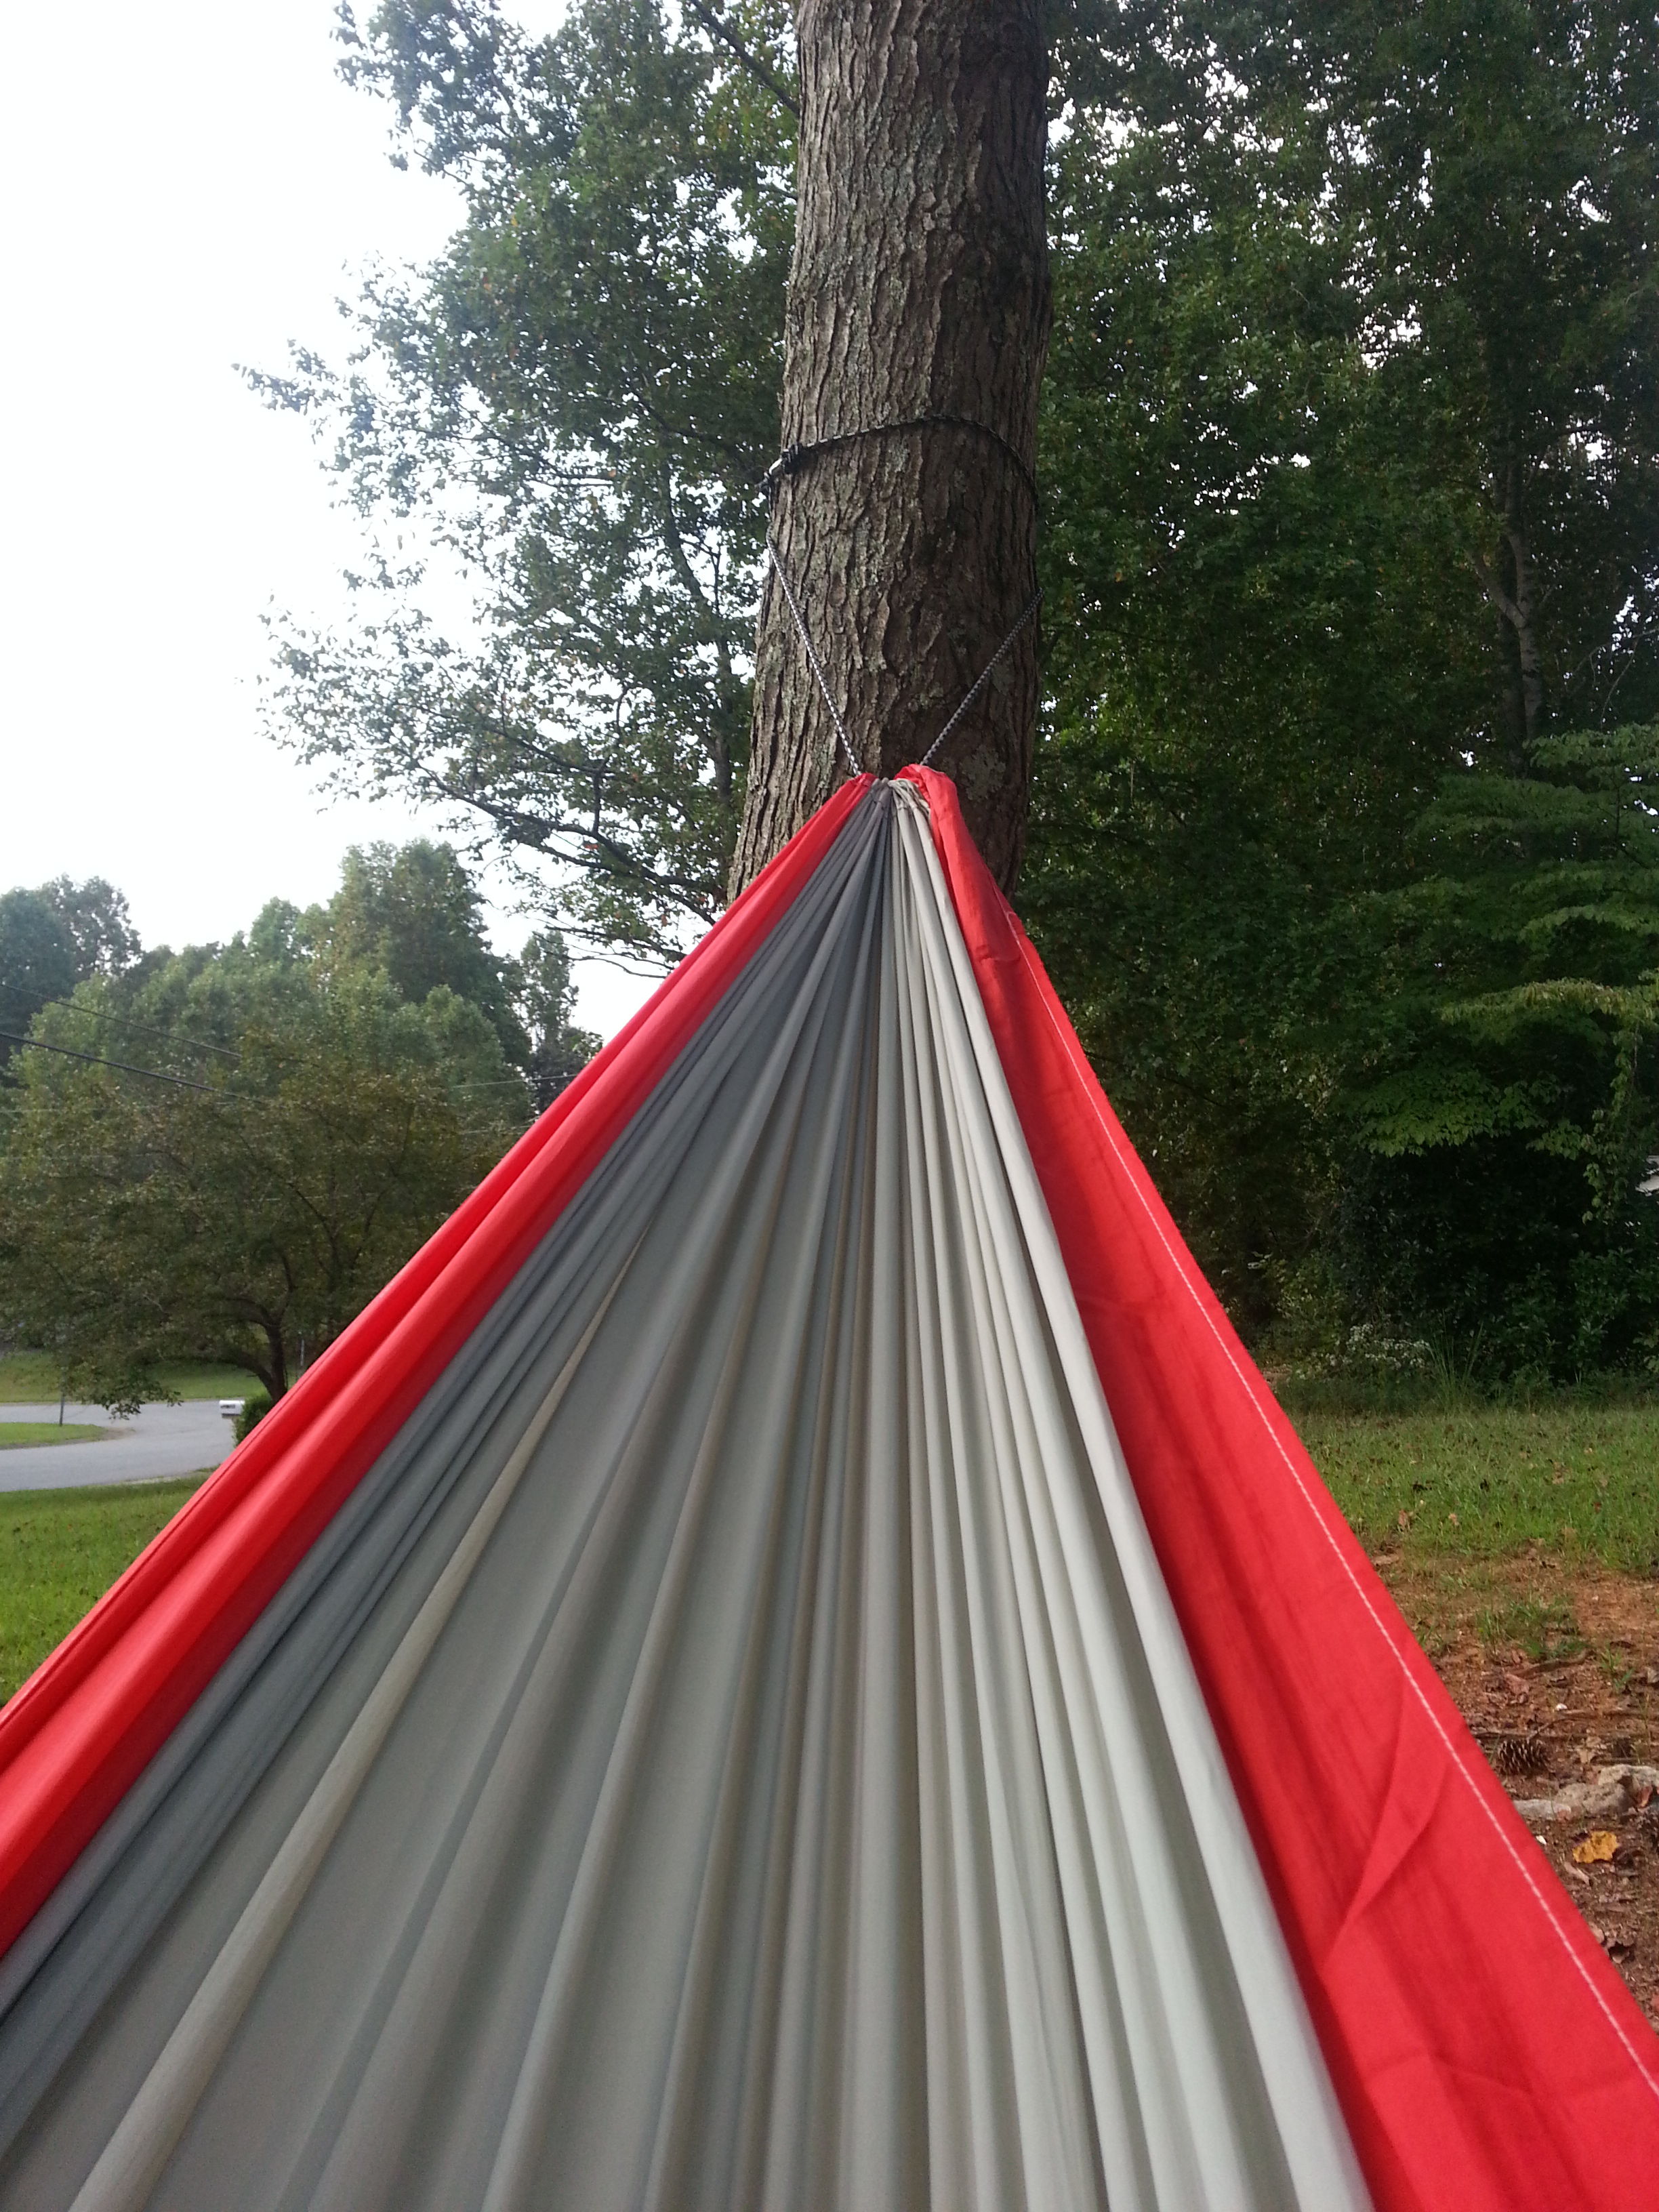 byer of maine hammock 001 traveler xxl double hammock gear review   outdoortrailgear hammock      rh   outdoortrailgear